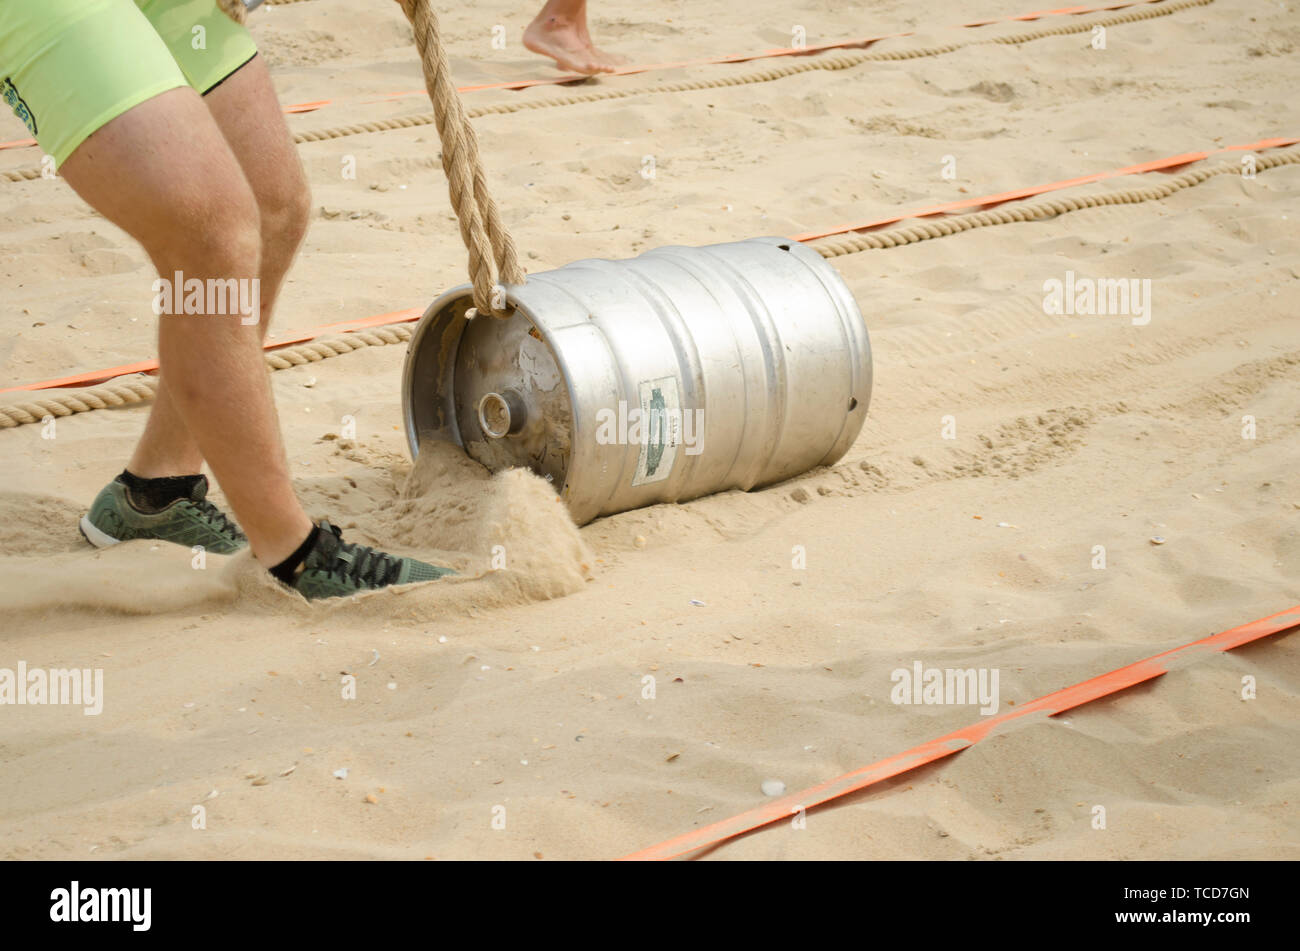 A man in shorts pulls a rope tied with rope over the sand. Sport competitions. - Stock Image